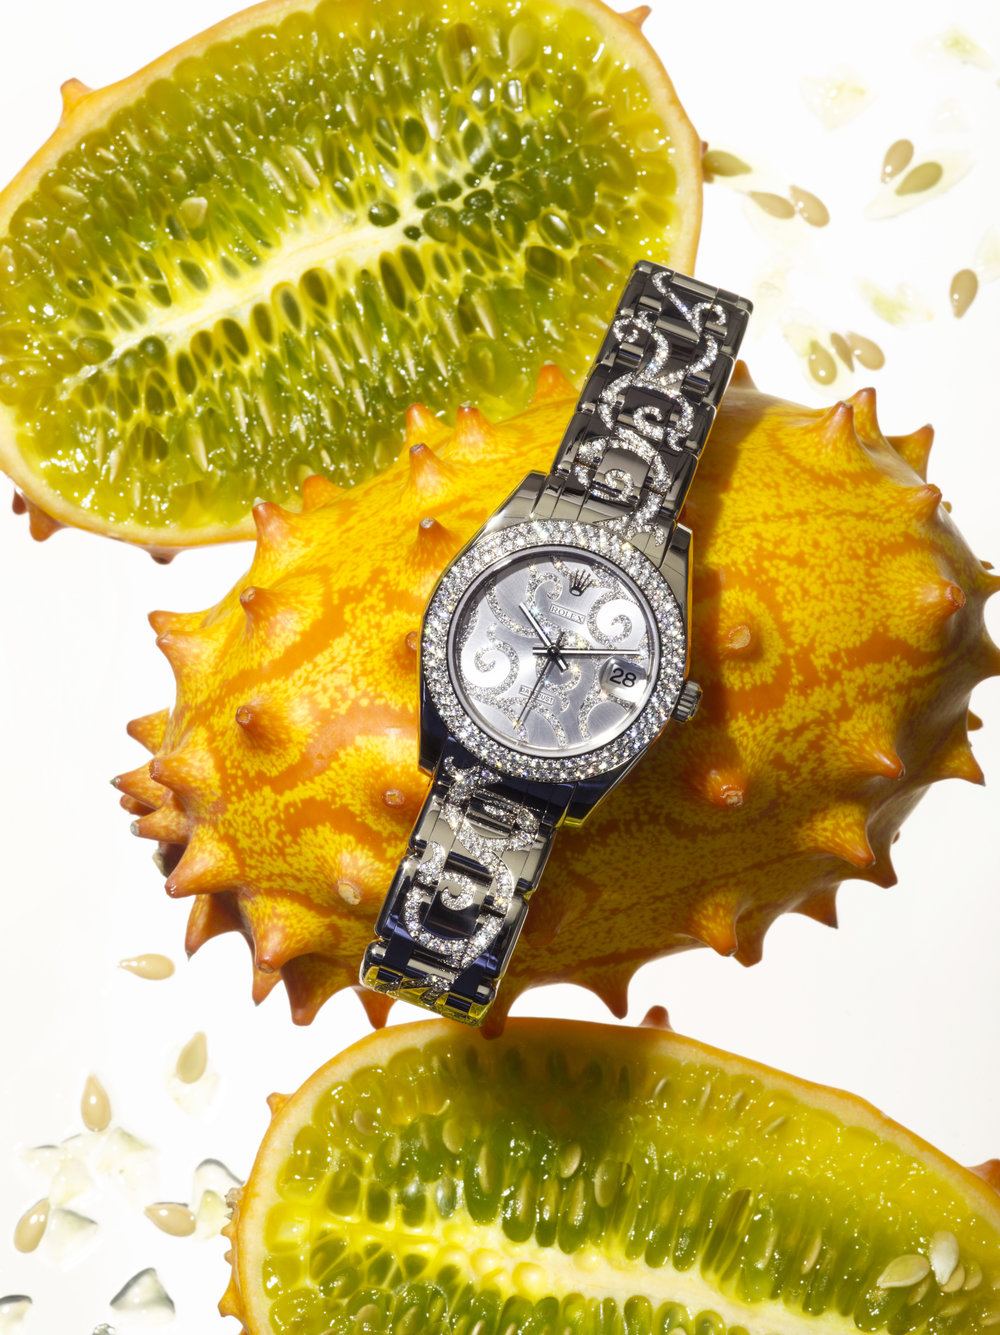 jewelry_watch_still_life_new_york_photographer